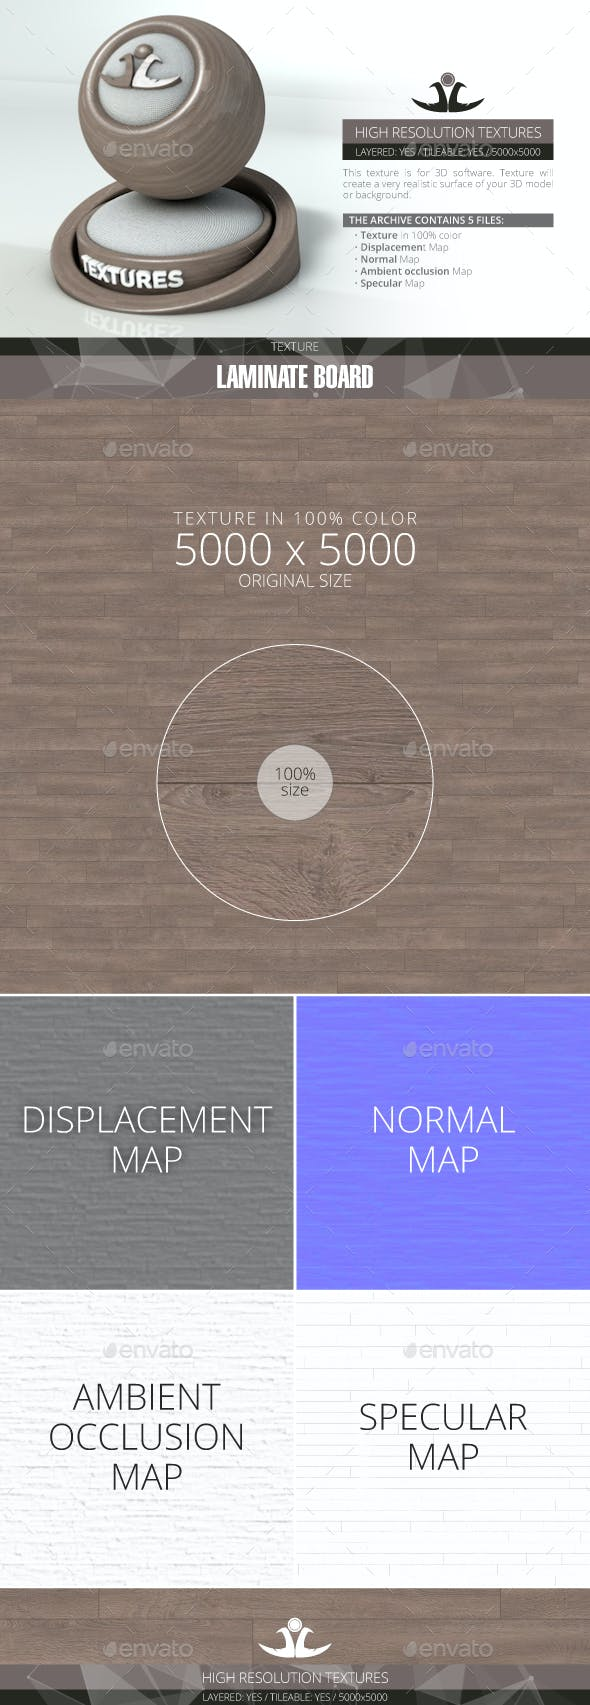 Laminate Board 38 - 3DOcean Item for Sale